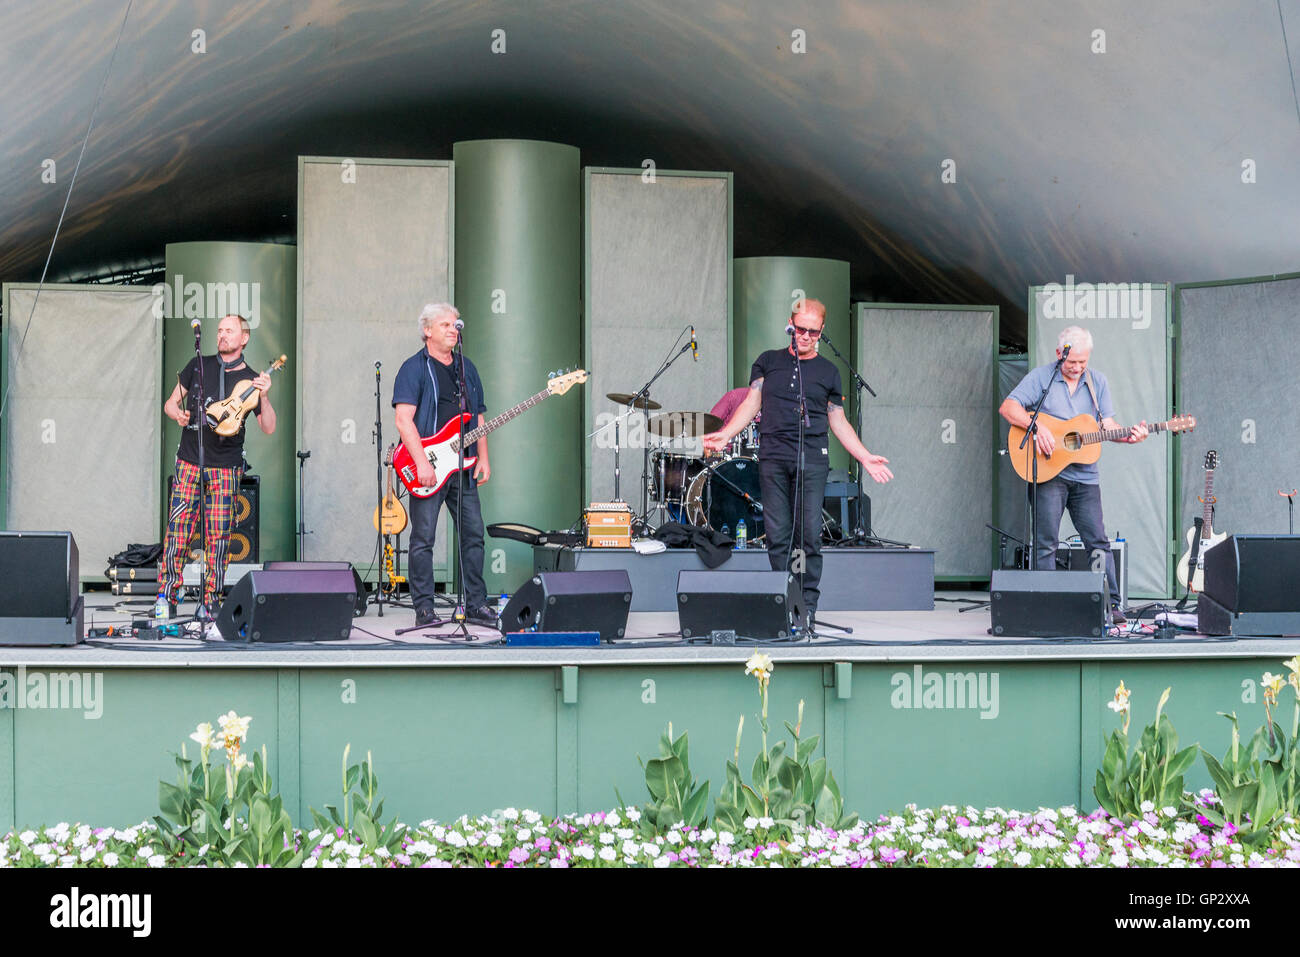 British Folk Rock group Oysterband performs at Butchart Gardens, Brentwood Bay, Greater Victoria, British Columbia, - Stock Image